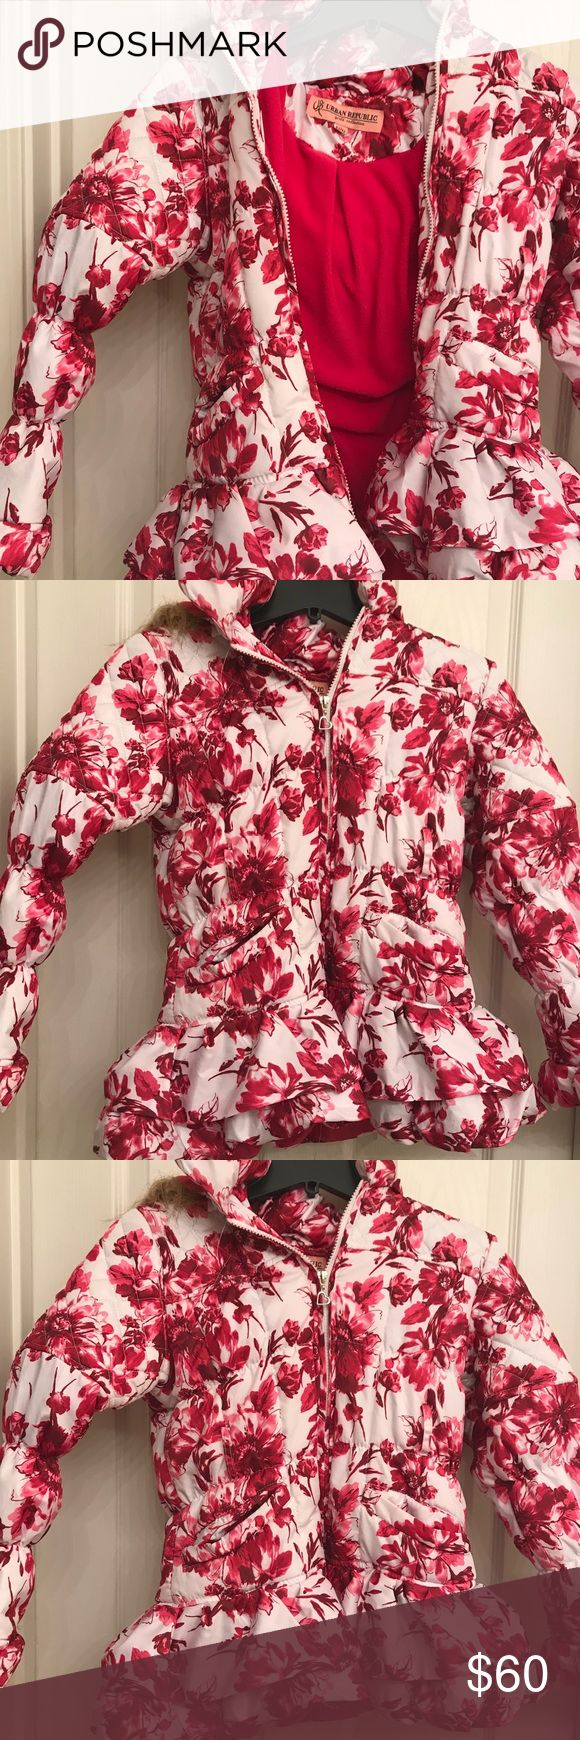 Girls Hoodie floral  fleece lined snow jacket Very pretty .. like new Urban Republic Jackets & Coats Puffers